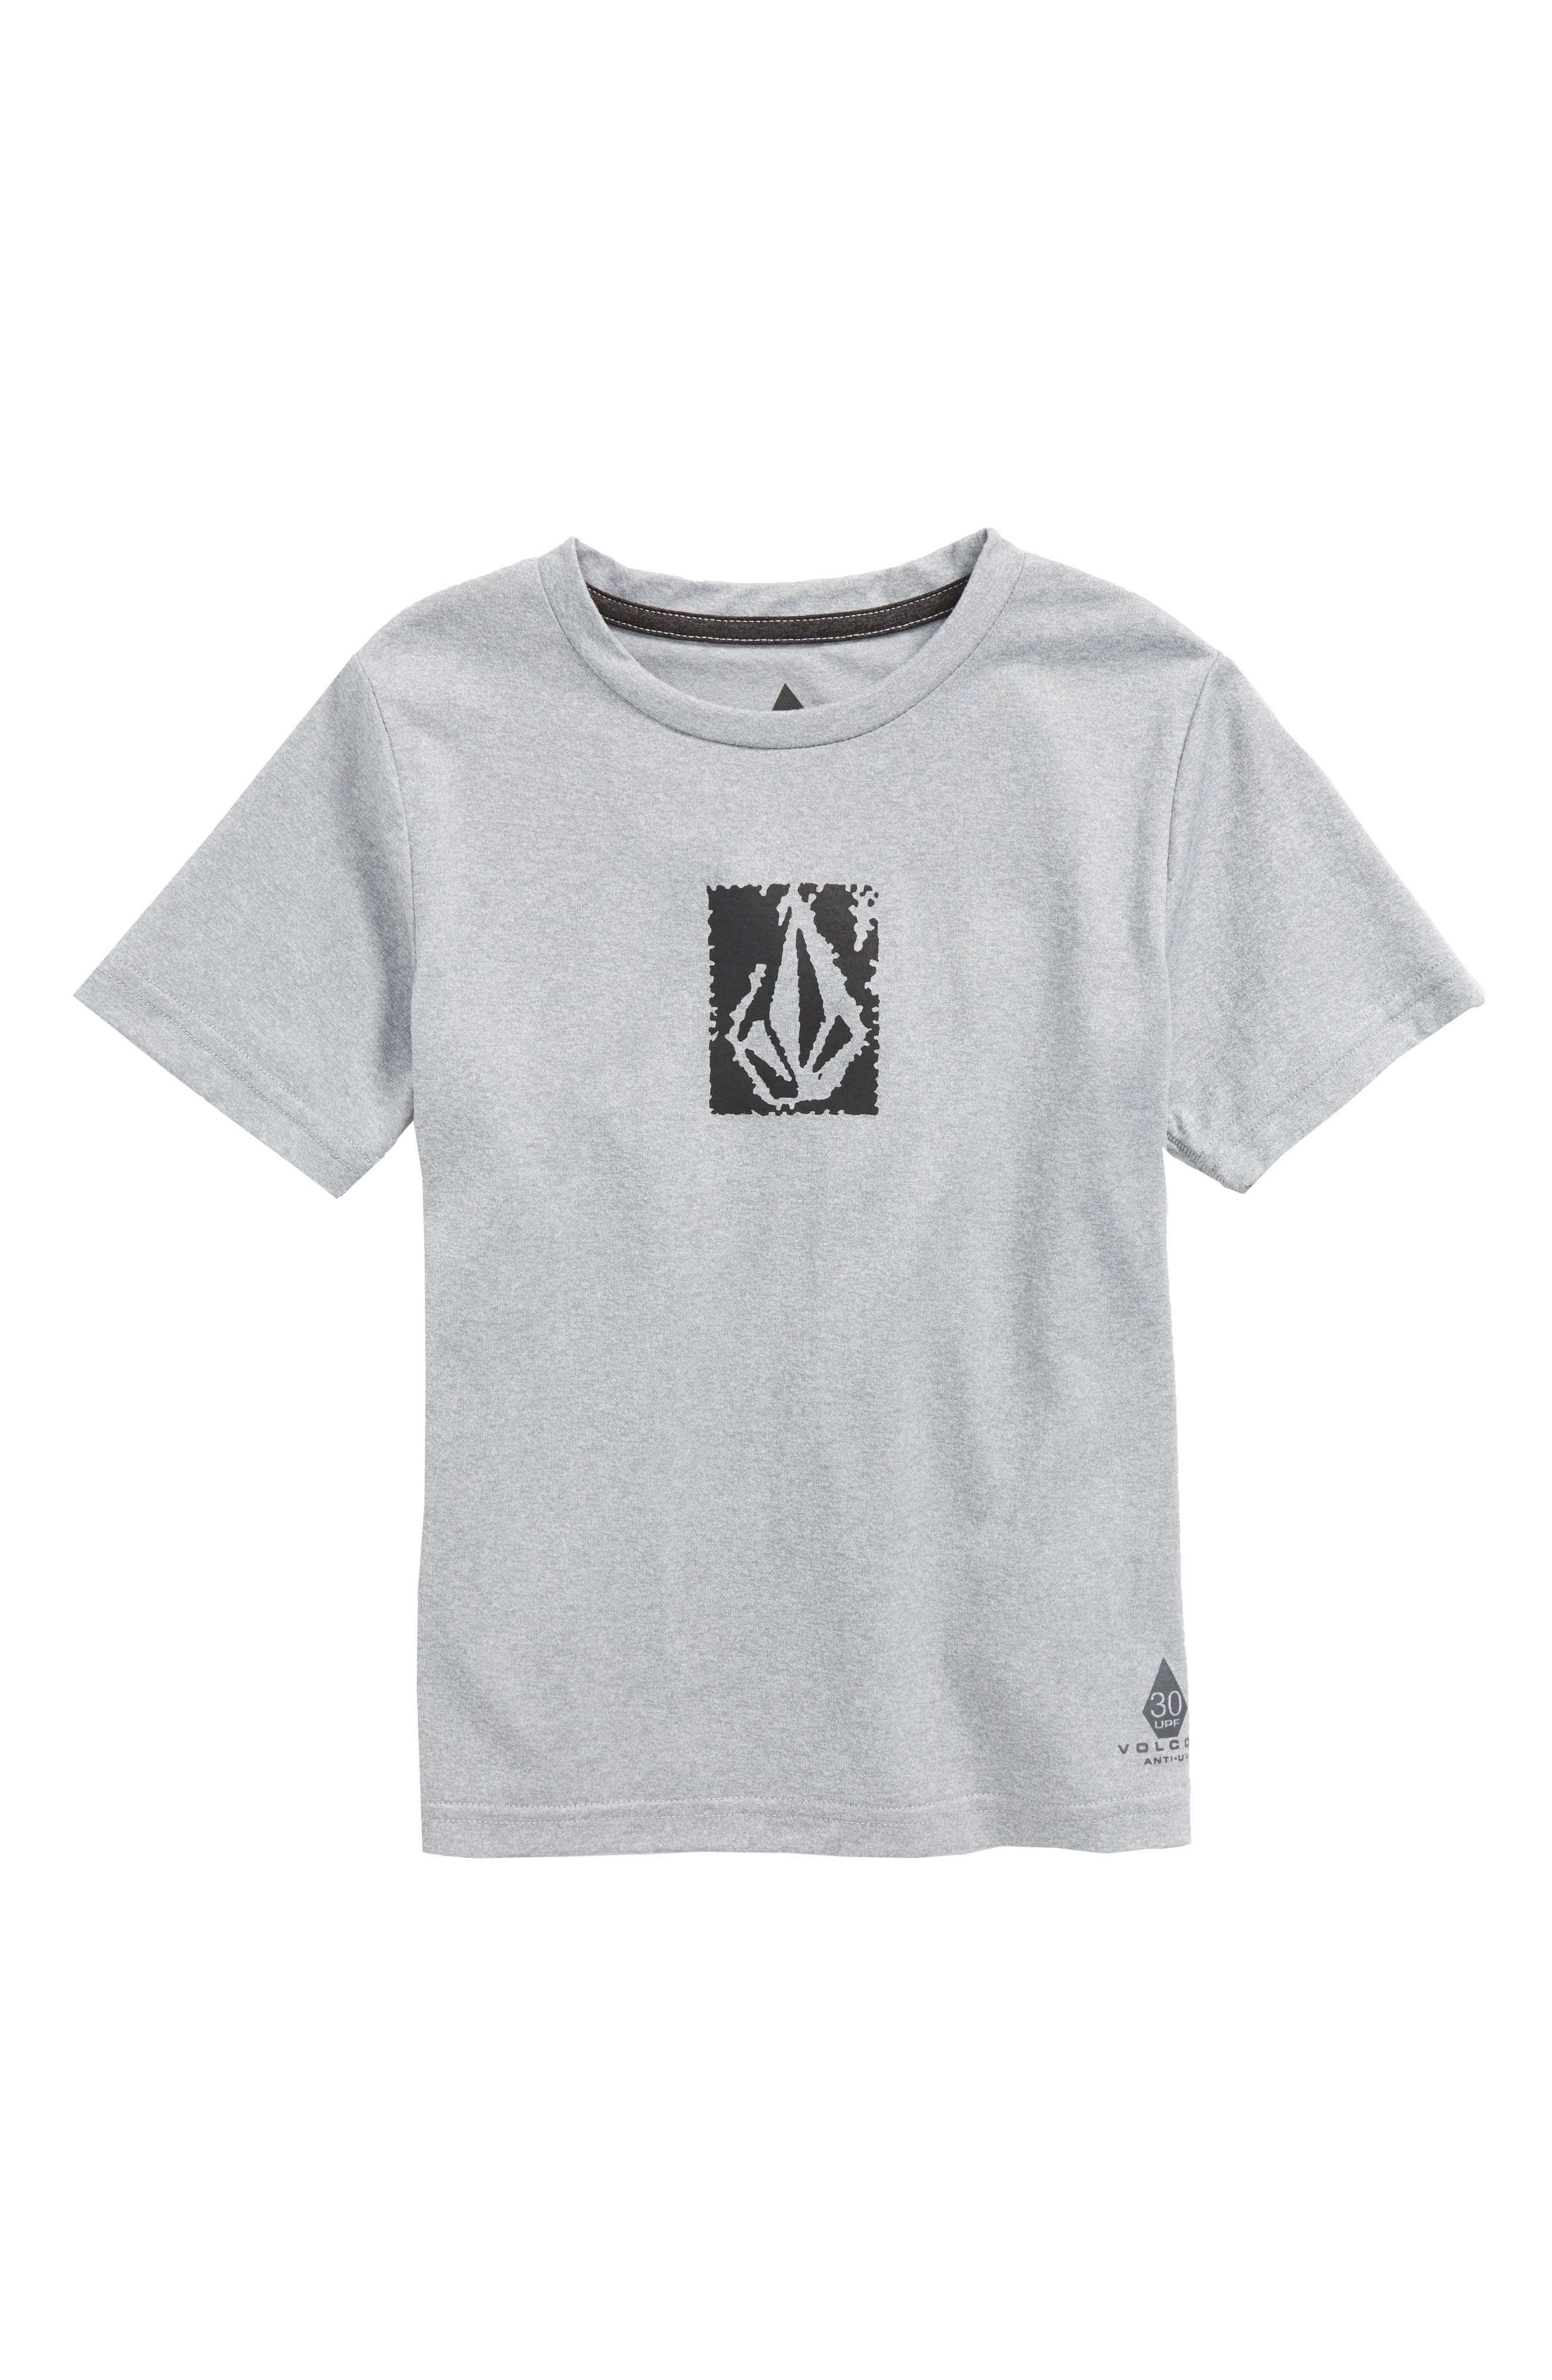 Lido Graphic Logo T-Shirt,                         Main,                         color, Pewter